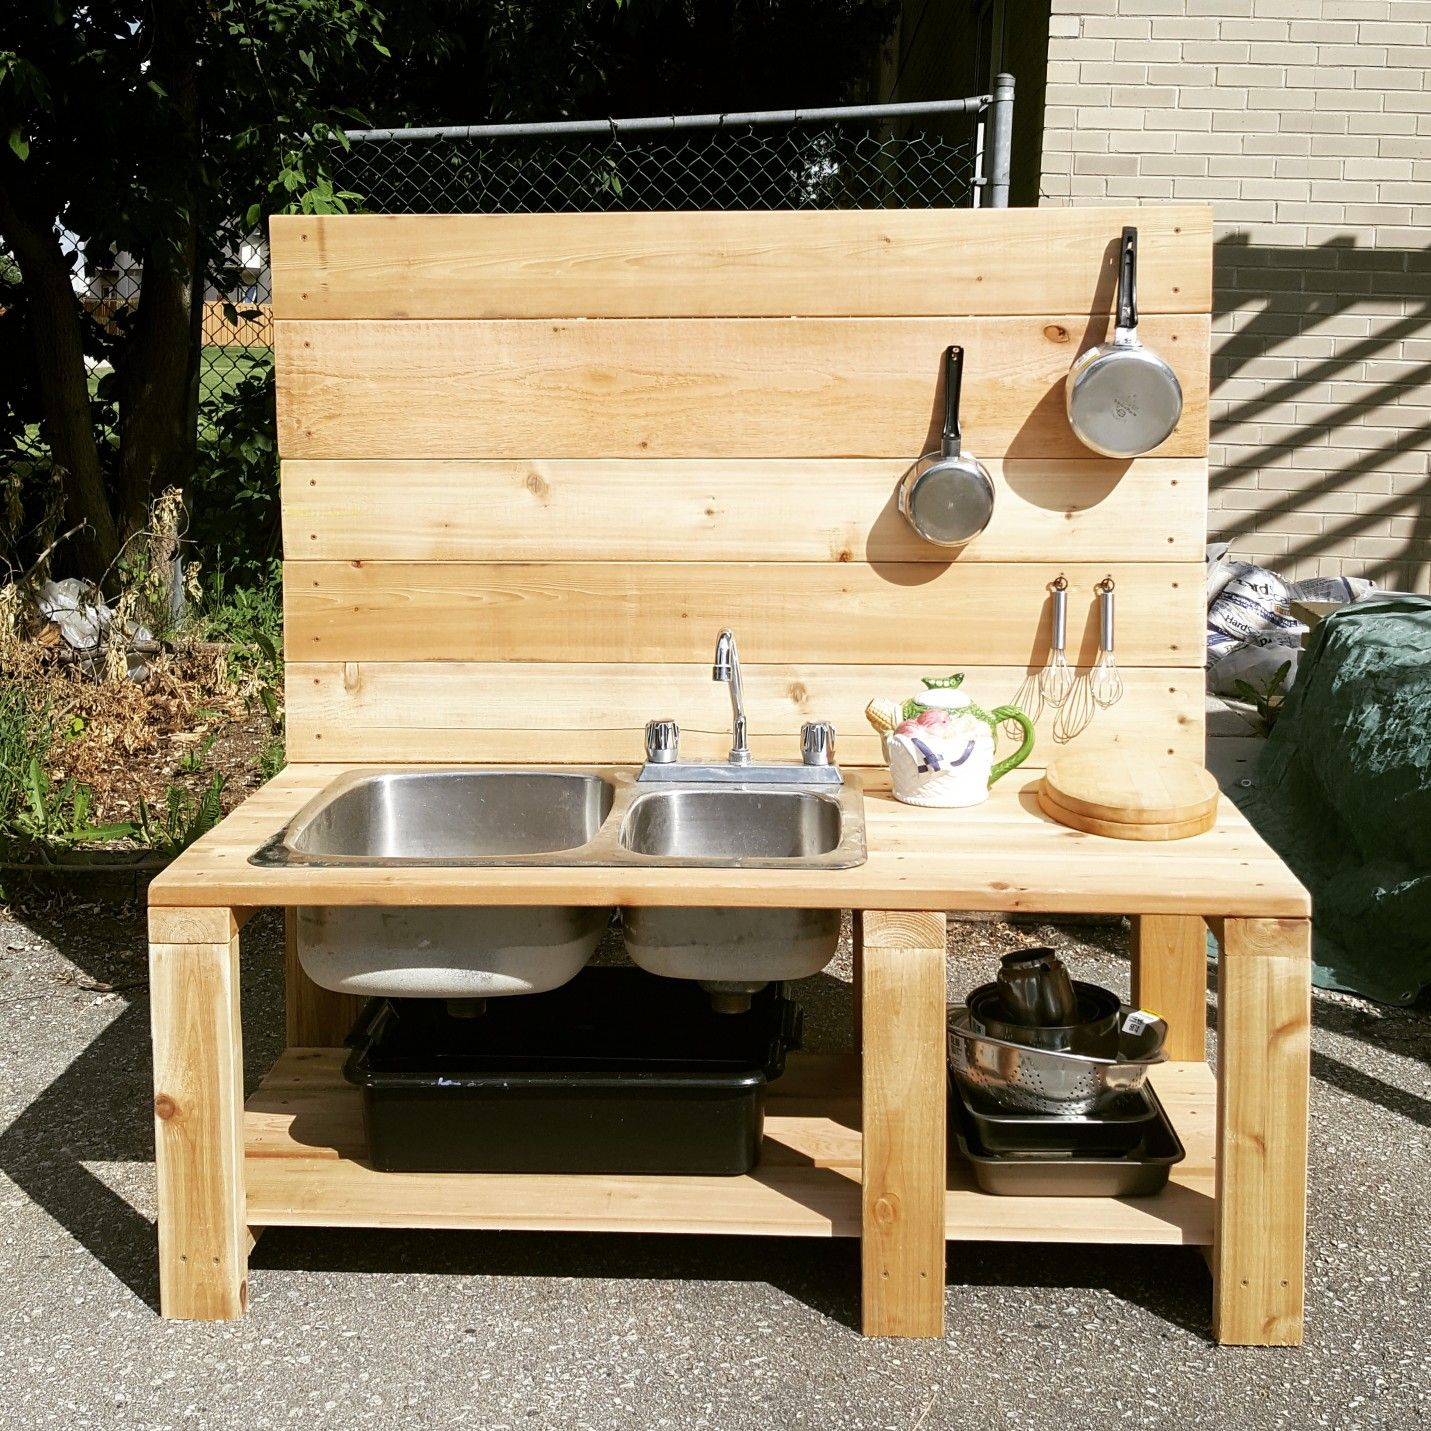 Balkontisch Do It Yourself A Diy Mud Kitchen With Reclaimed Sink And Running Water Via Garden